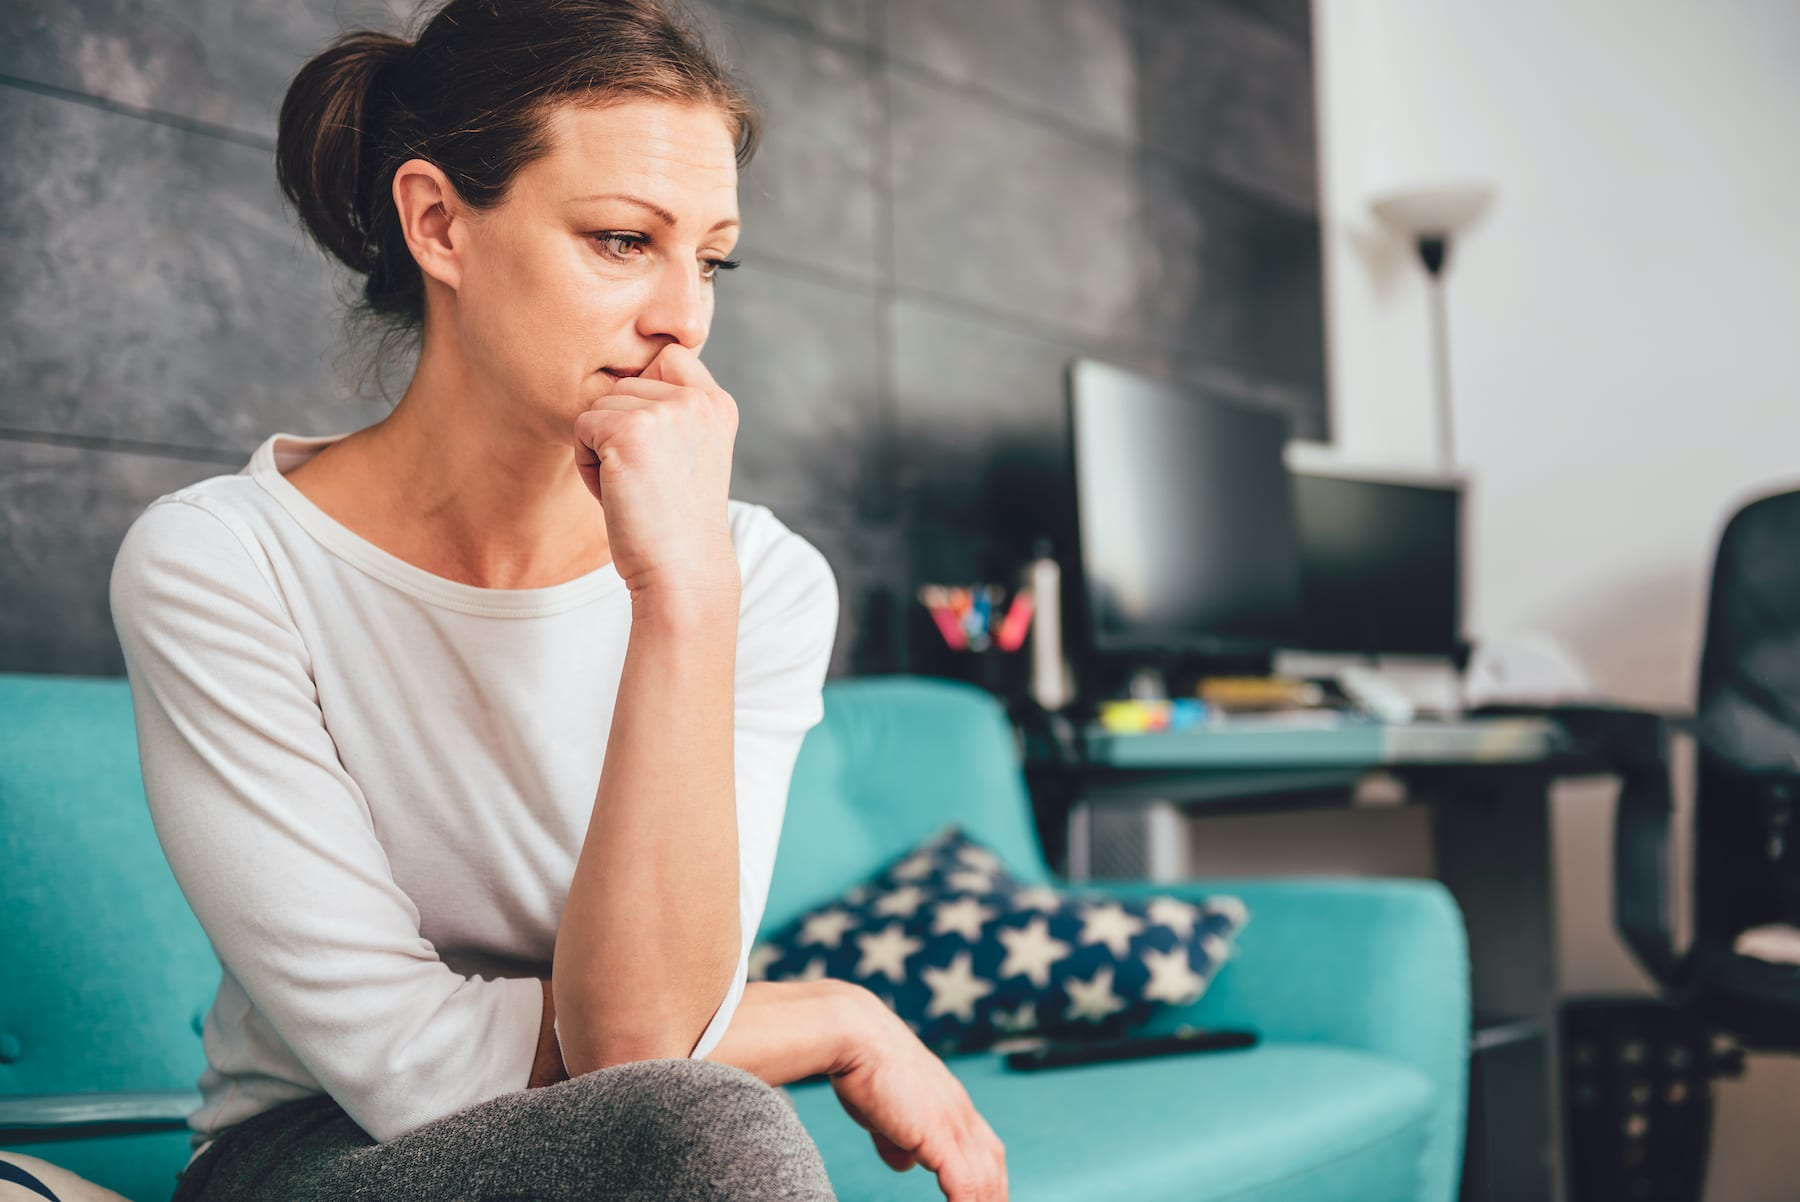 Worried woman sitting on a couch